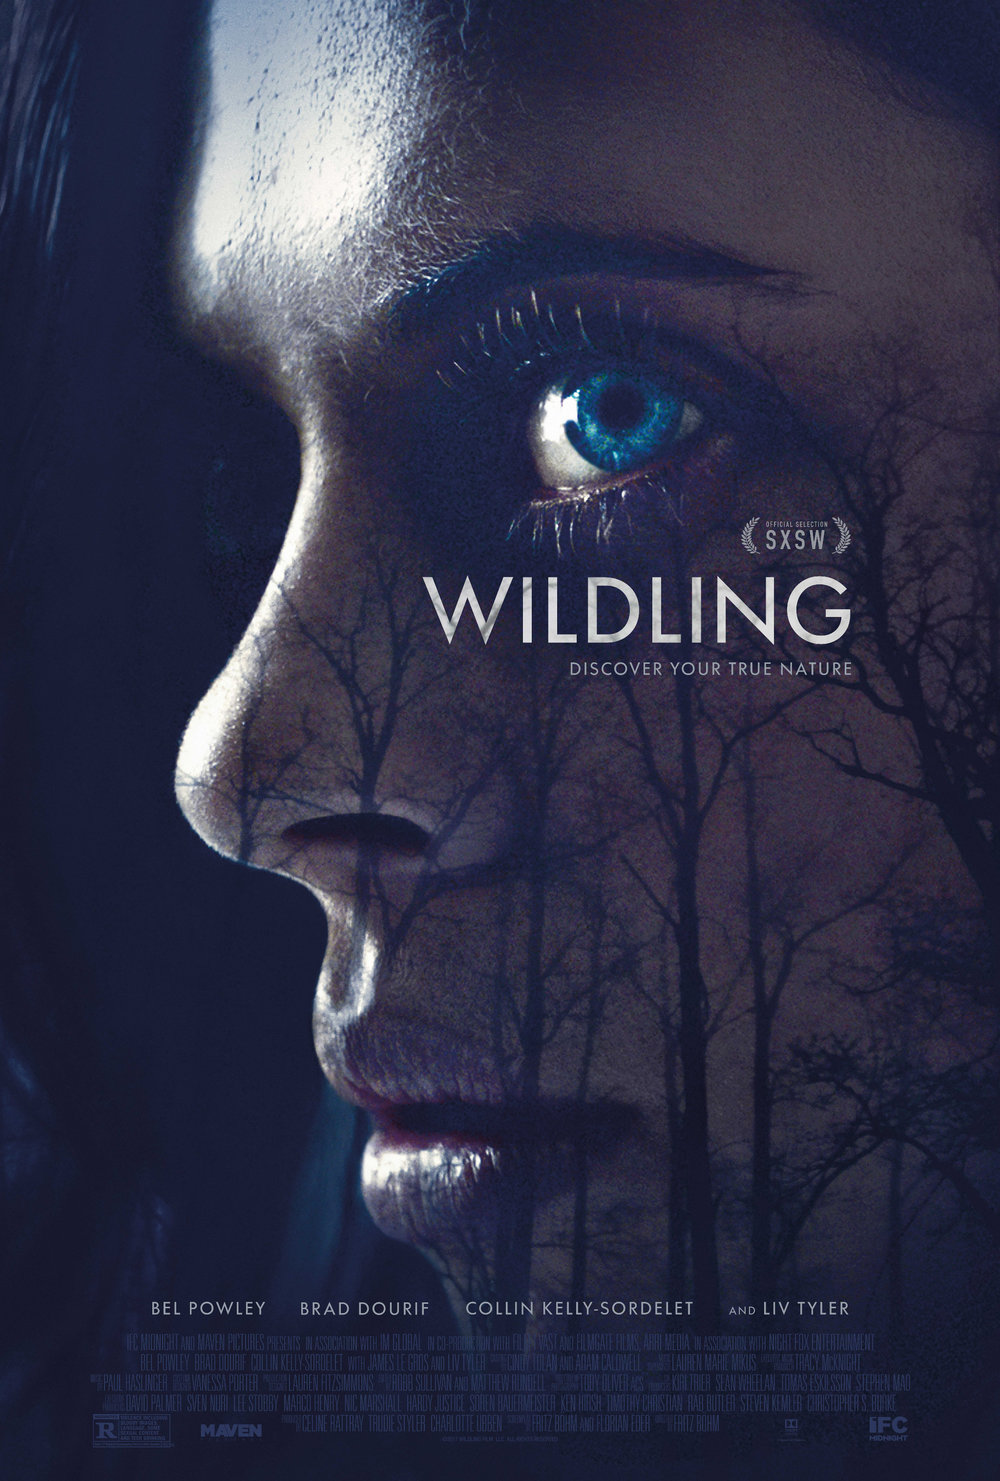 Wildling  is out now in select theaters and available on VOD.